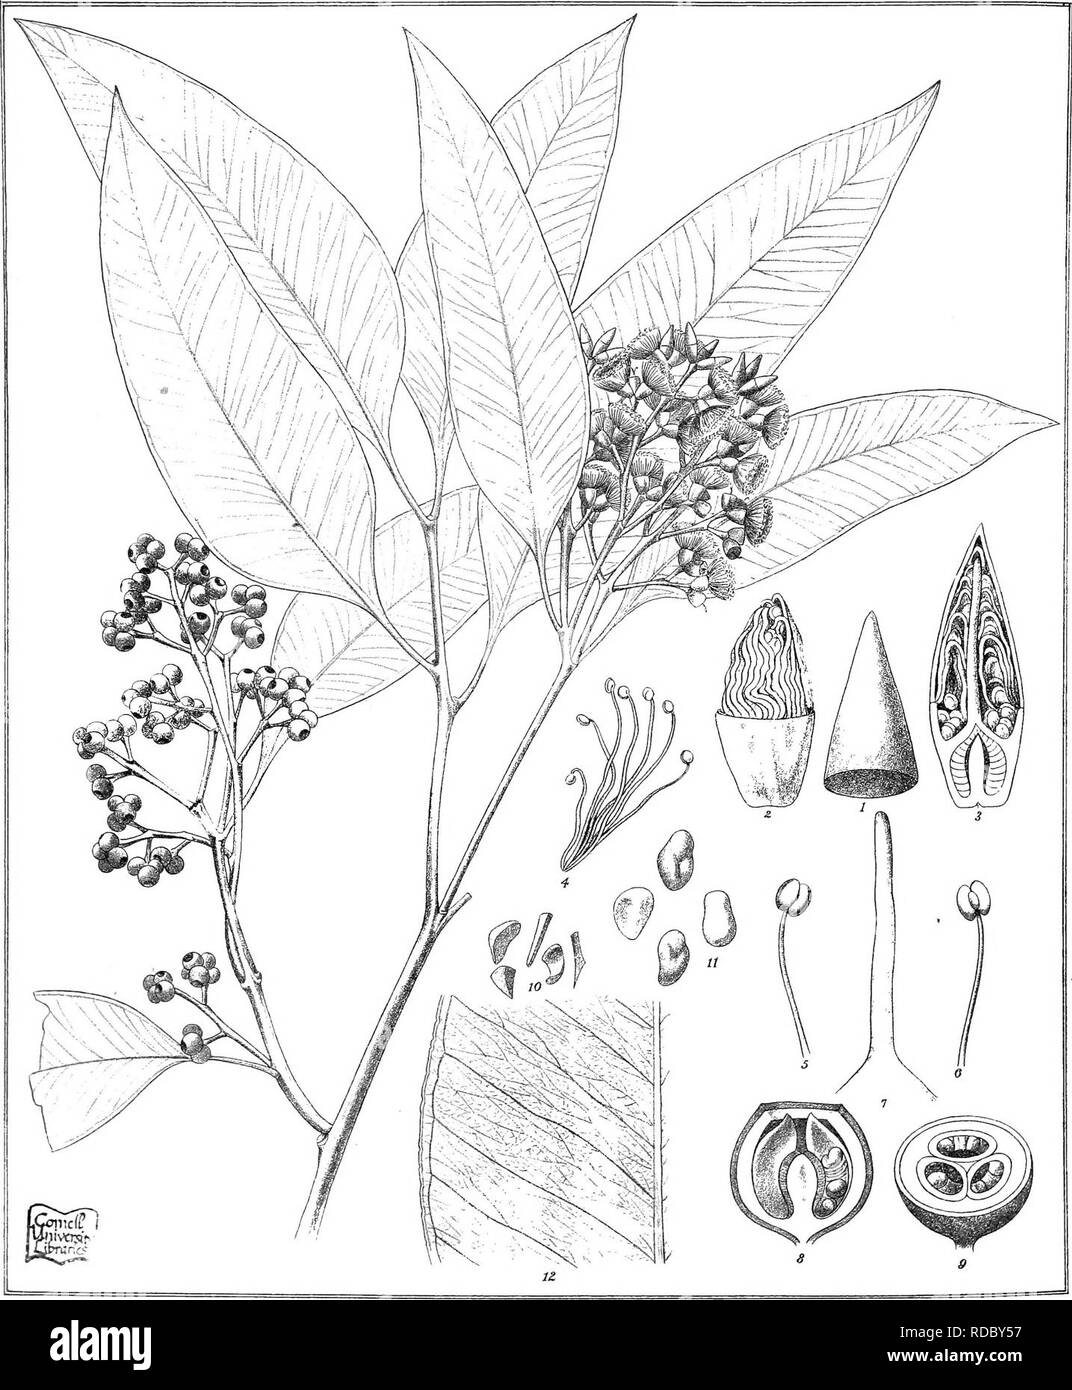 . Eucalyptographia. A descriptive atlas of the eucalypts of Australia and the adjoining islands;. Eucalyptus; Botany. Toat del C. Trcedel * C° LitK. Ev.M. direxit. SUam LitKo Gov Printinl Office Melb ^, ii©i%]|)(iii l@TOliiimii.FjM '/.IVi. Please note that these images are extracted from scanned page images that may have been digitally enhanced for readability - coloration and appearance of these illustrations may not perfectly resemble the original work.. Mueller, Ferdinand von, 1825-1896. Melbourne, J. Ferres, Govt. Print; [etc. ,etc. ] - Stock Image